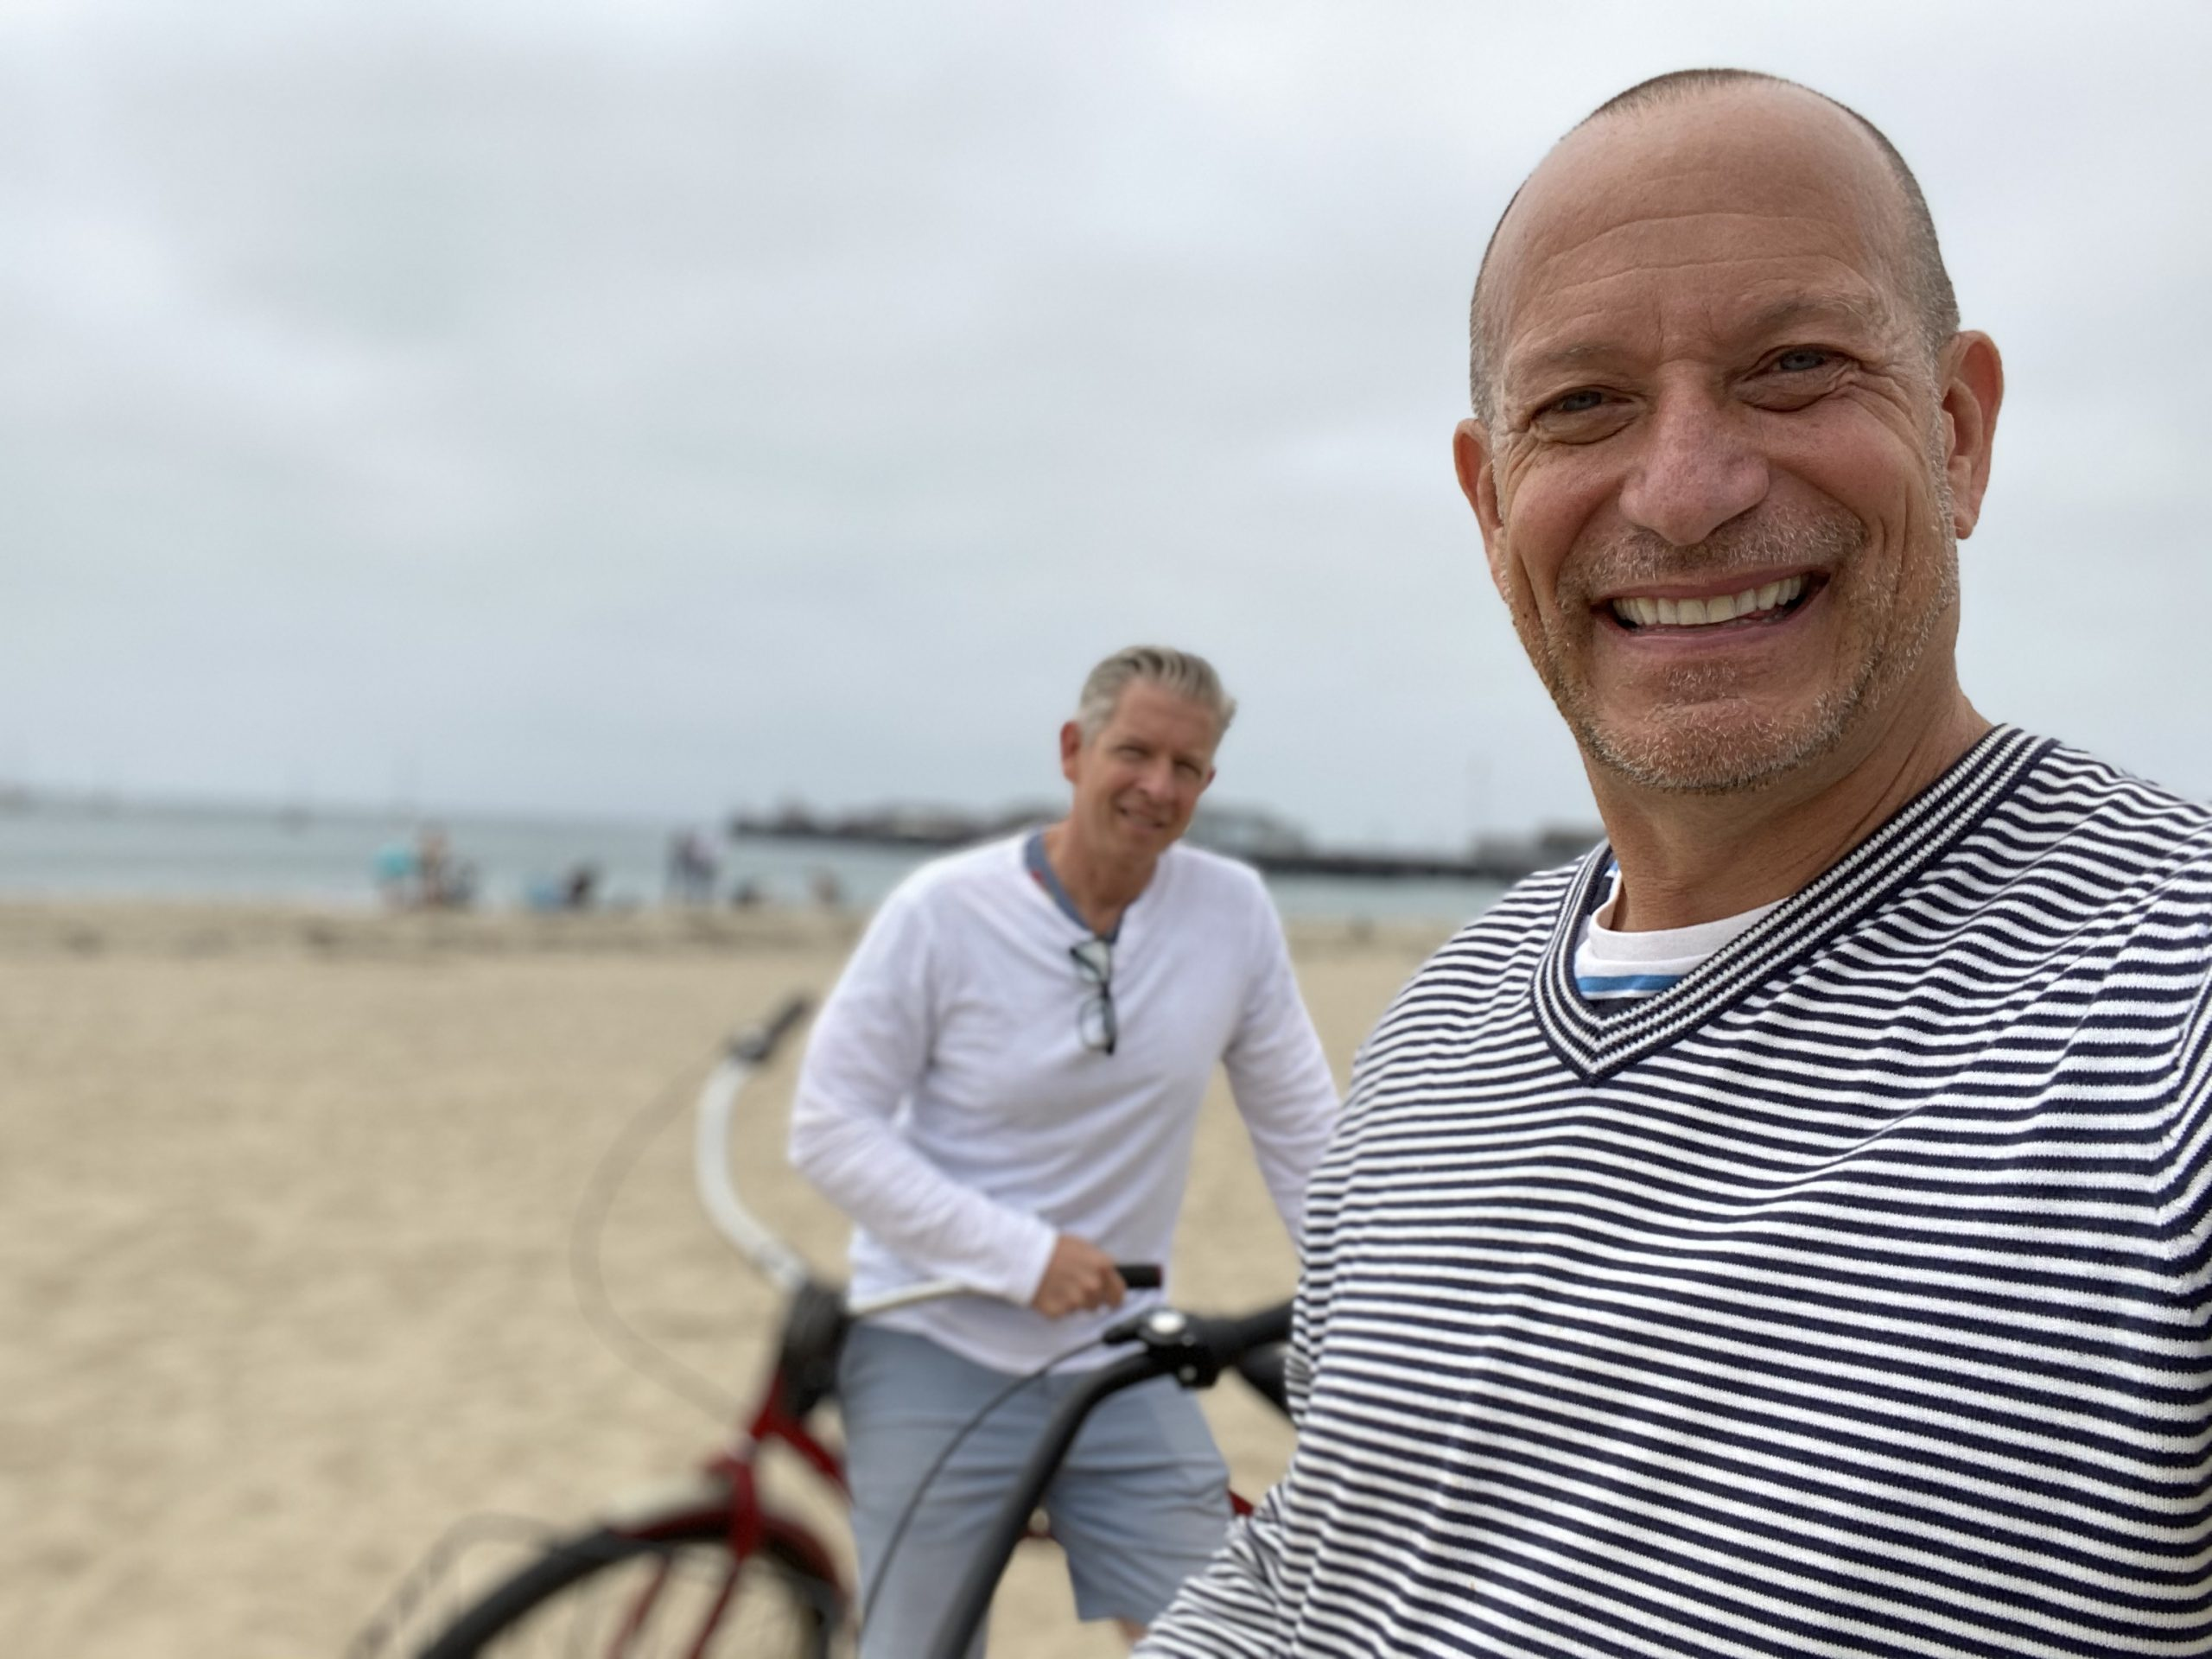 two men stop for photo while riding bikes along beachfront in downtown Santa Barbara, CA